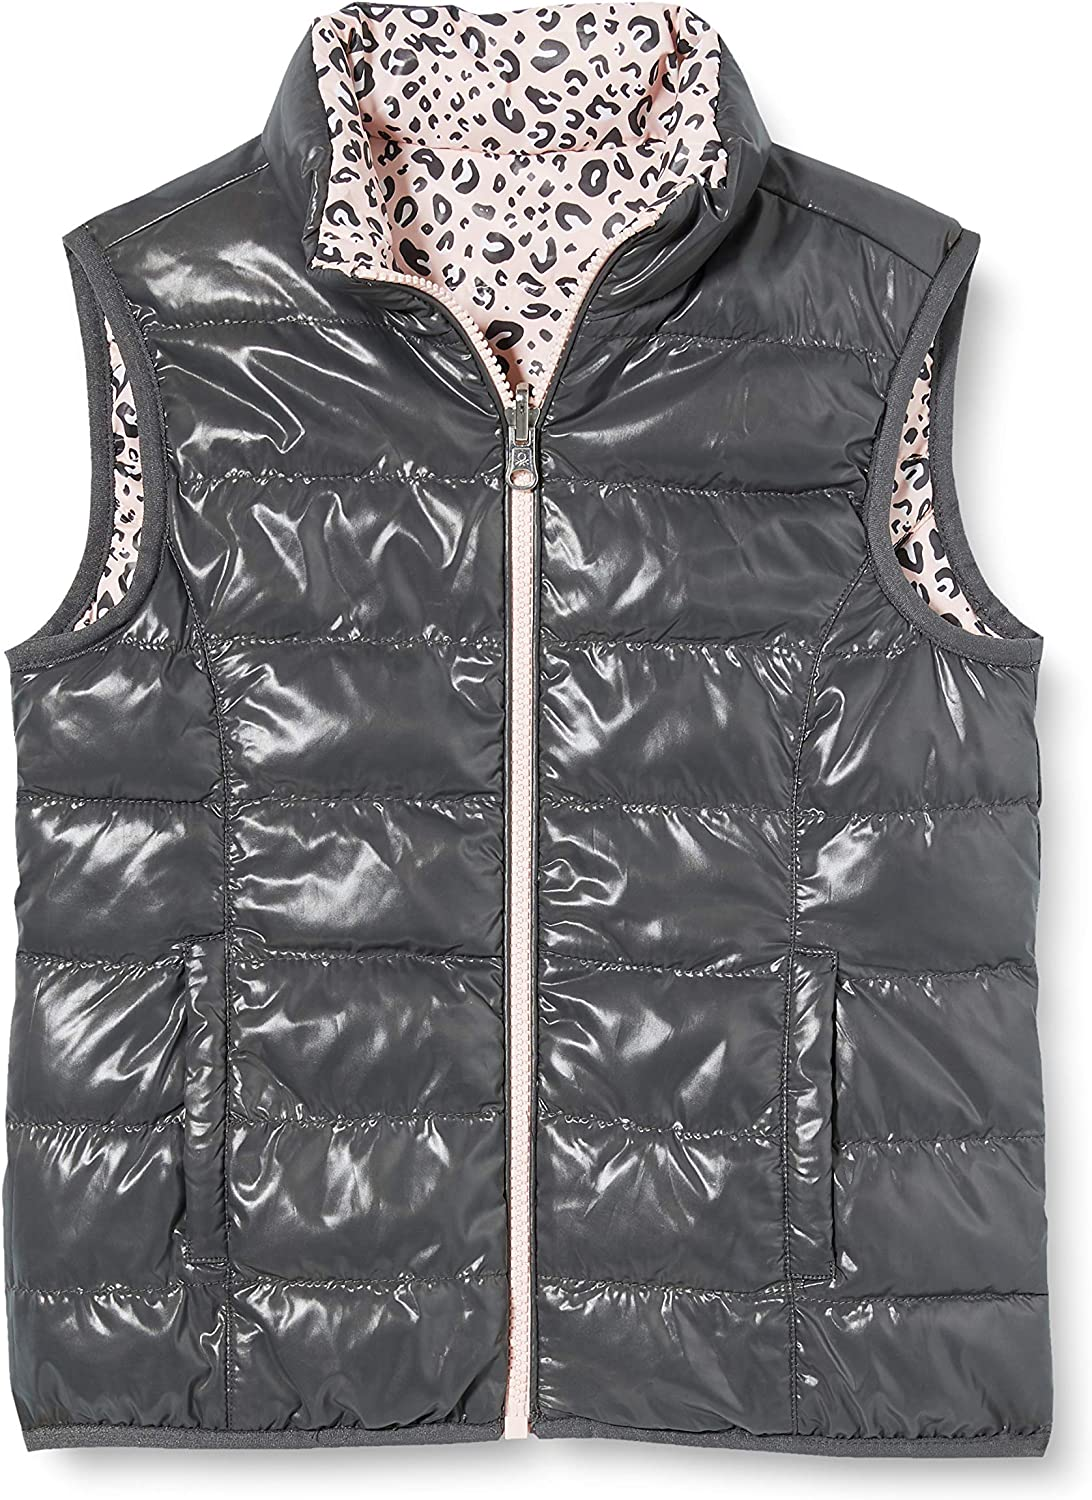 United Colors of Benetton Baby Girls Gilet Sports Jacket